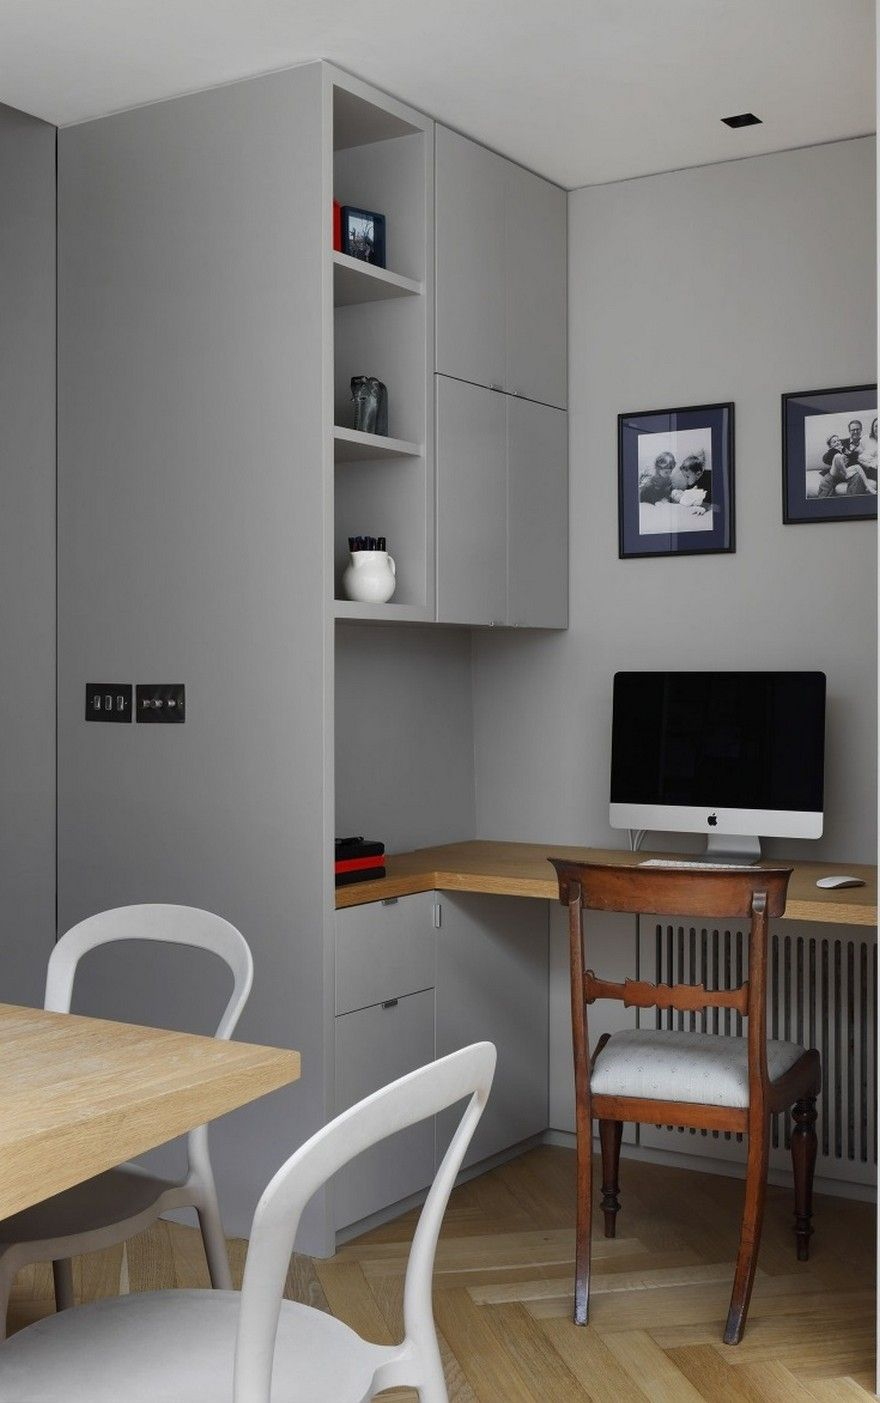 Small 10x10 Study Room Layout: Victorian Family House In London Gets Fresh Redesign